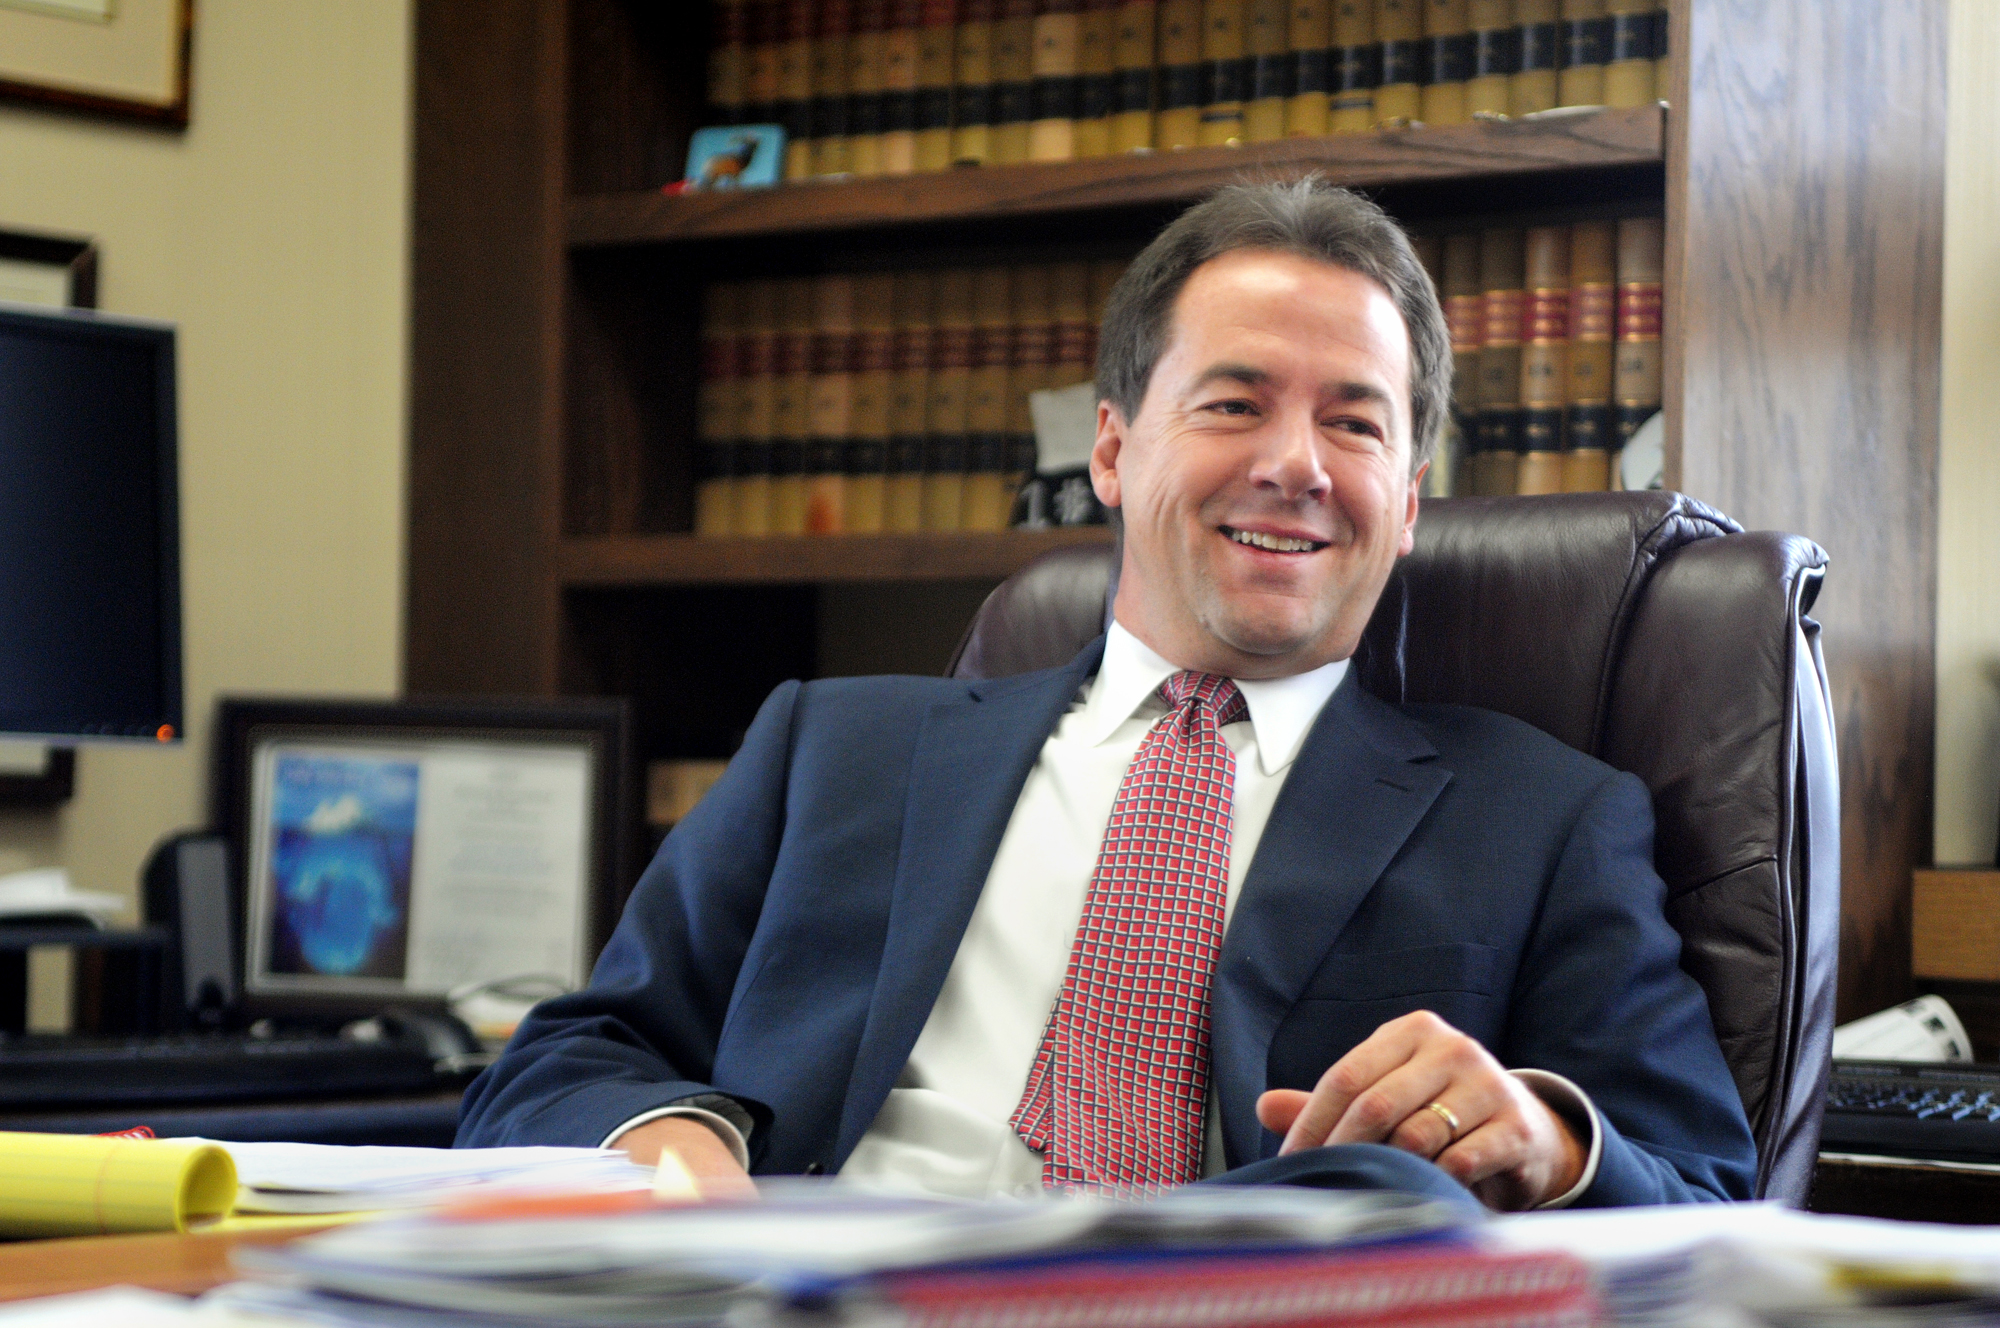 Steve Bullock seated at his desk in his ofice with wall of books in background wearing a black suit with white shirt and red tie